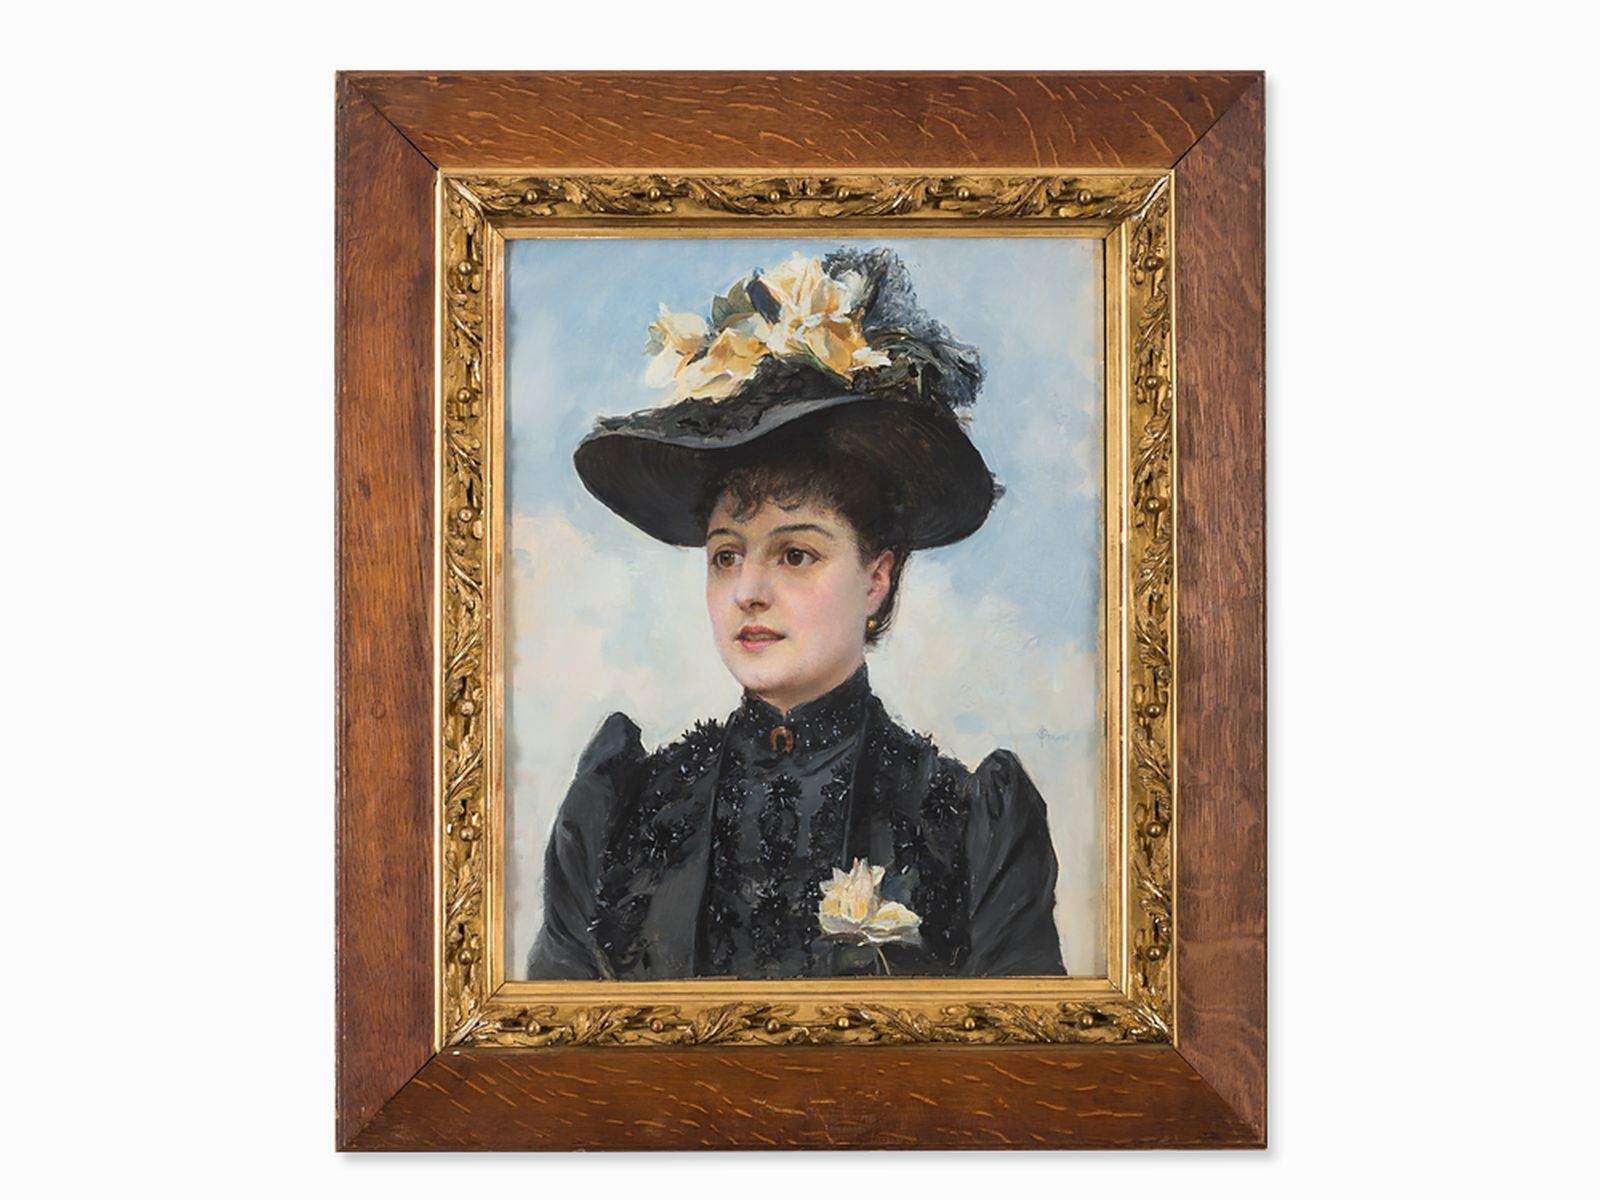 #4 Paul Jean Gervais (1859-c.1936), Portrait of a Lady, circa 1900 |Paul Jean Gervais (1859-ca.1936), Image